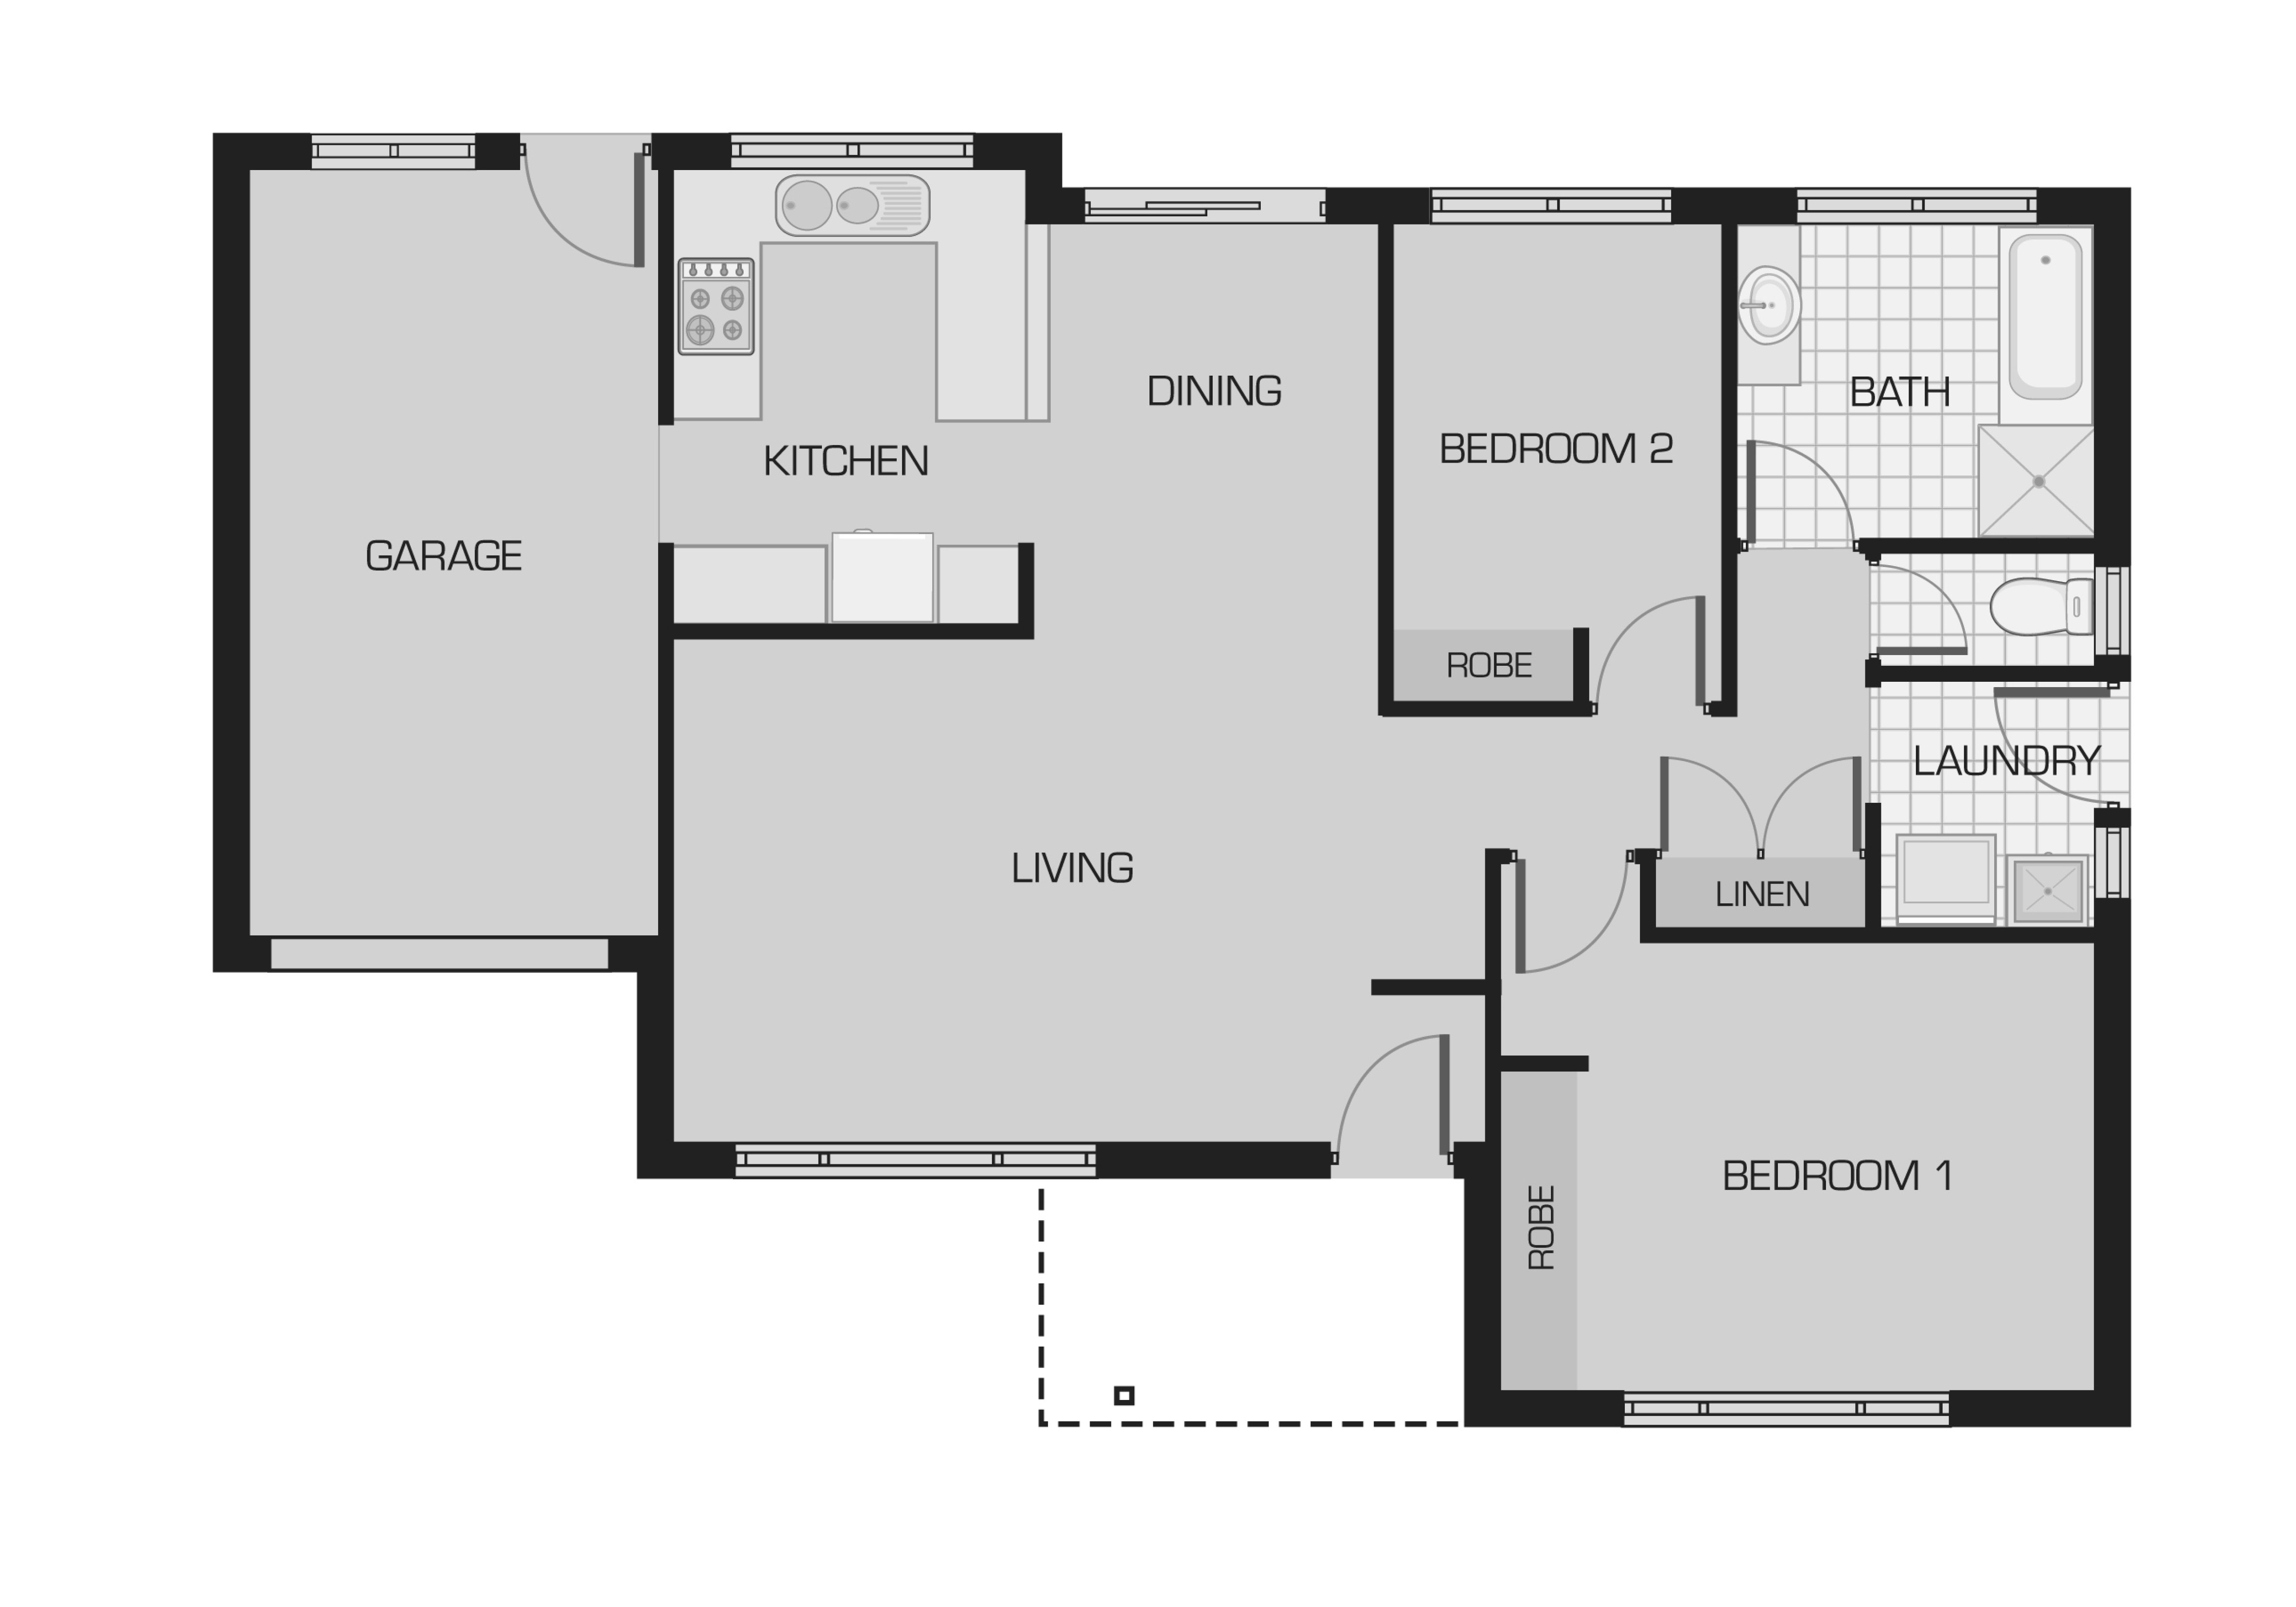 Bellevue Gardens_ILU_2x2x1x0_Oxley Floorplan